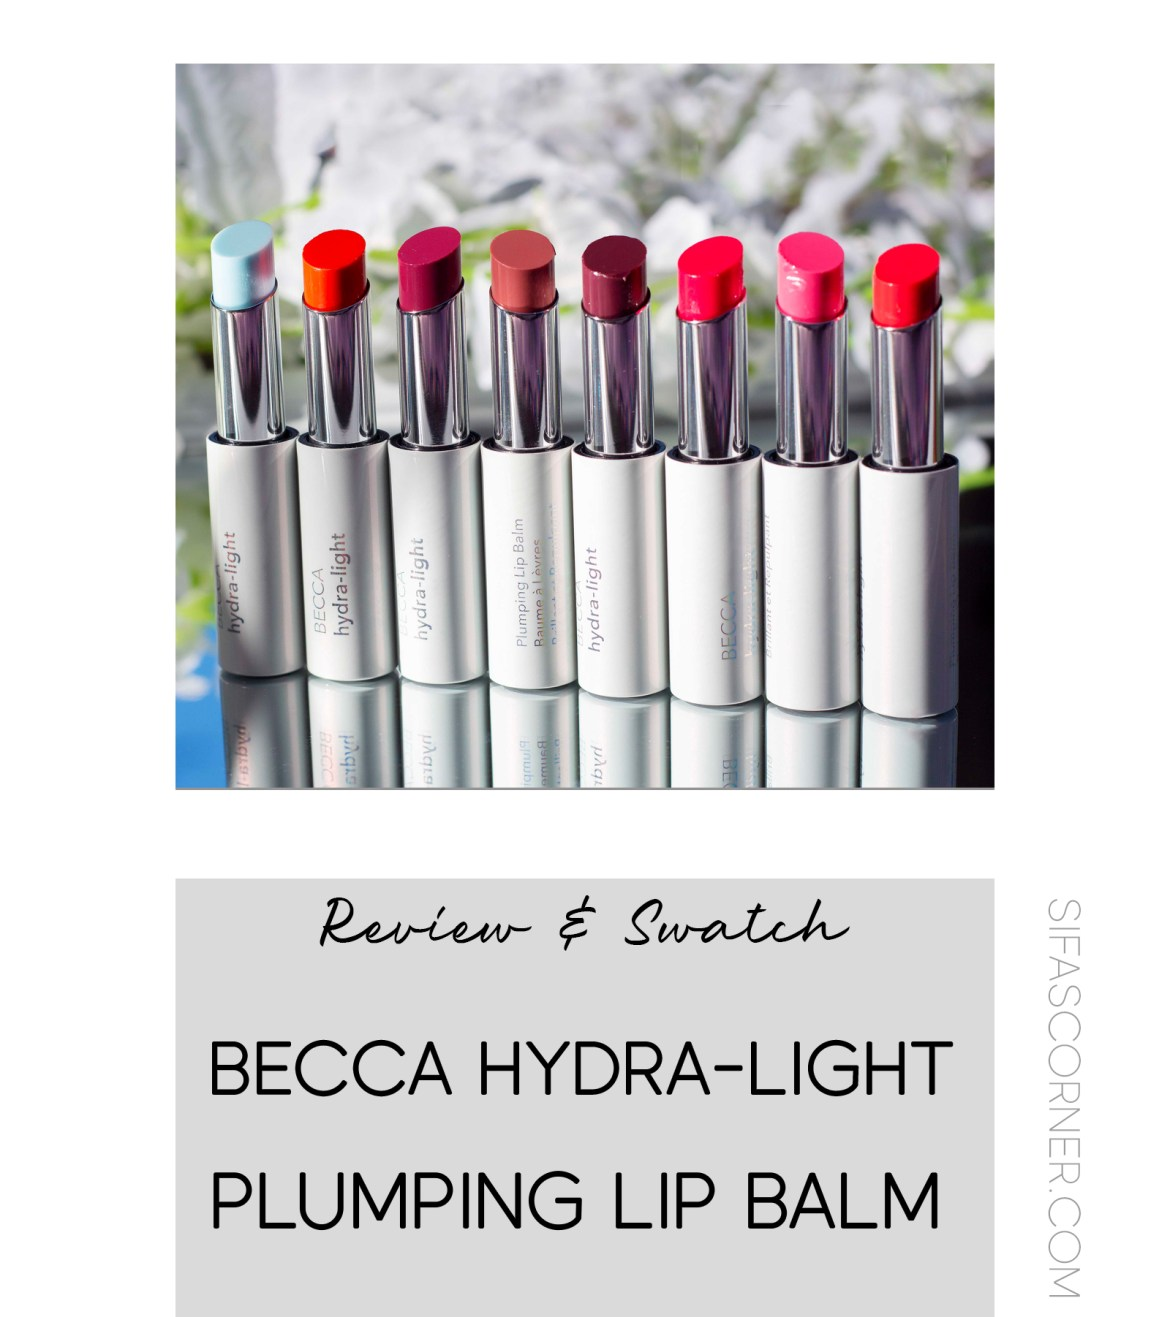 Becca Hydra-Light Plumping Lip Balm: